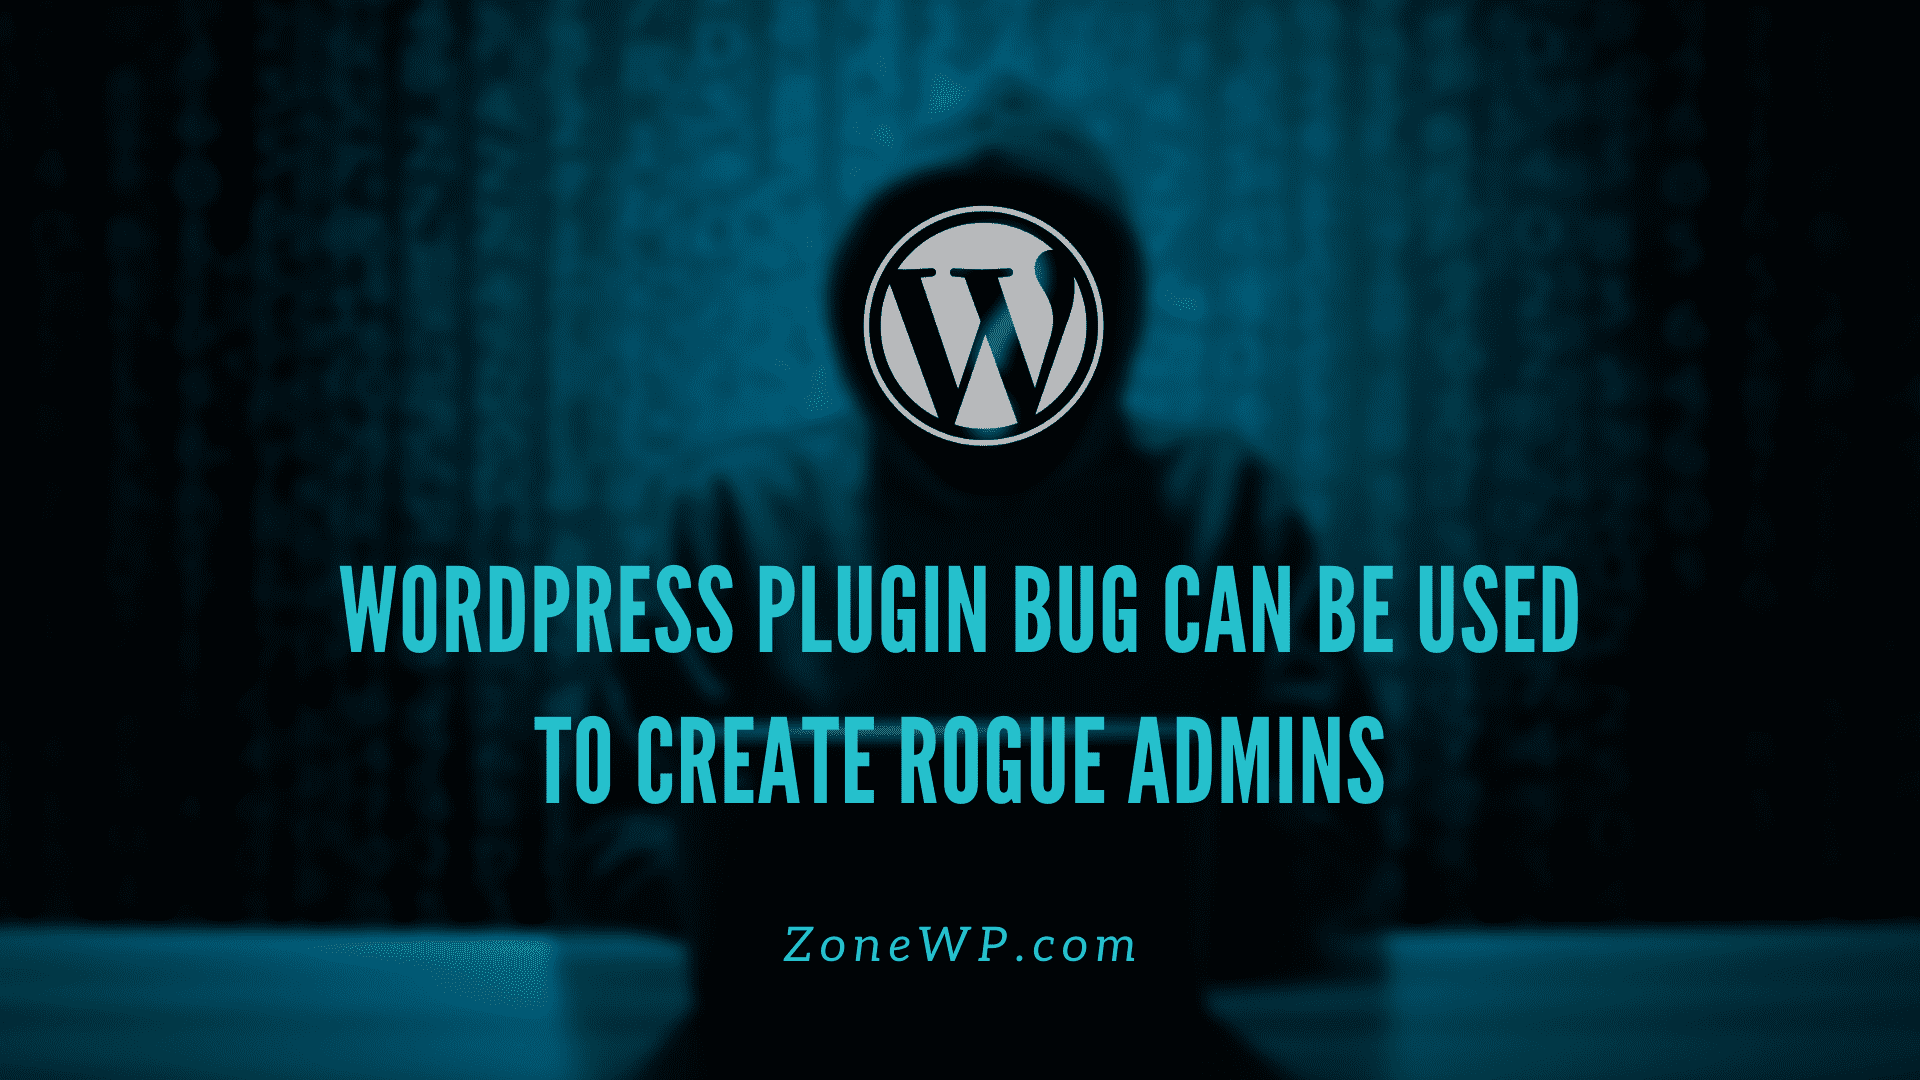 WordPress Plugin Bug Can Be Used to Create Rogue Admins